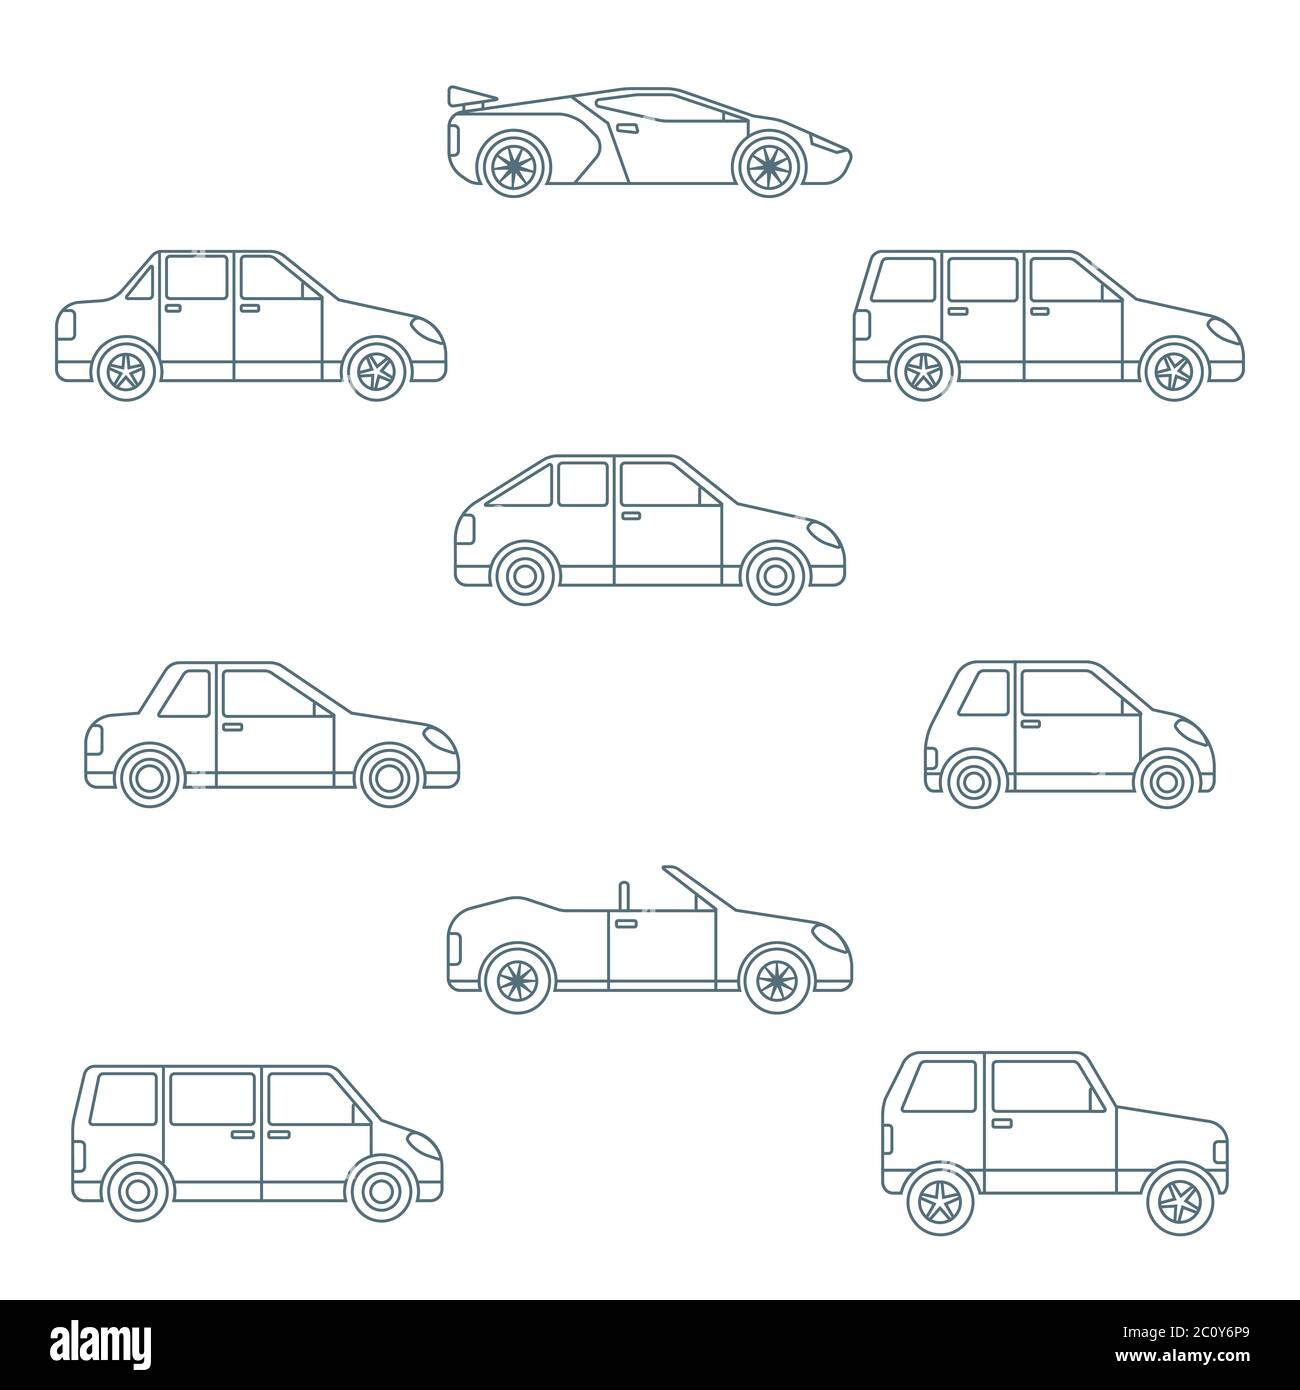 Dark Outline Various Body Types Of Cars Icons Collection Stock Photo Alamy